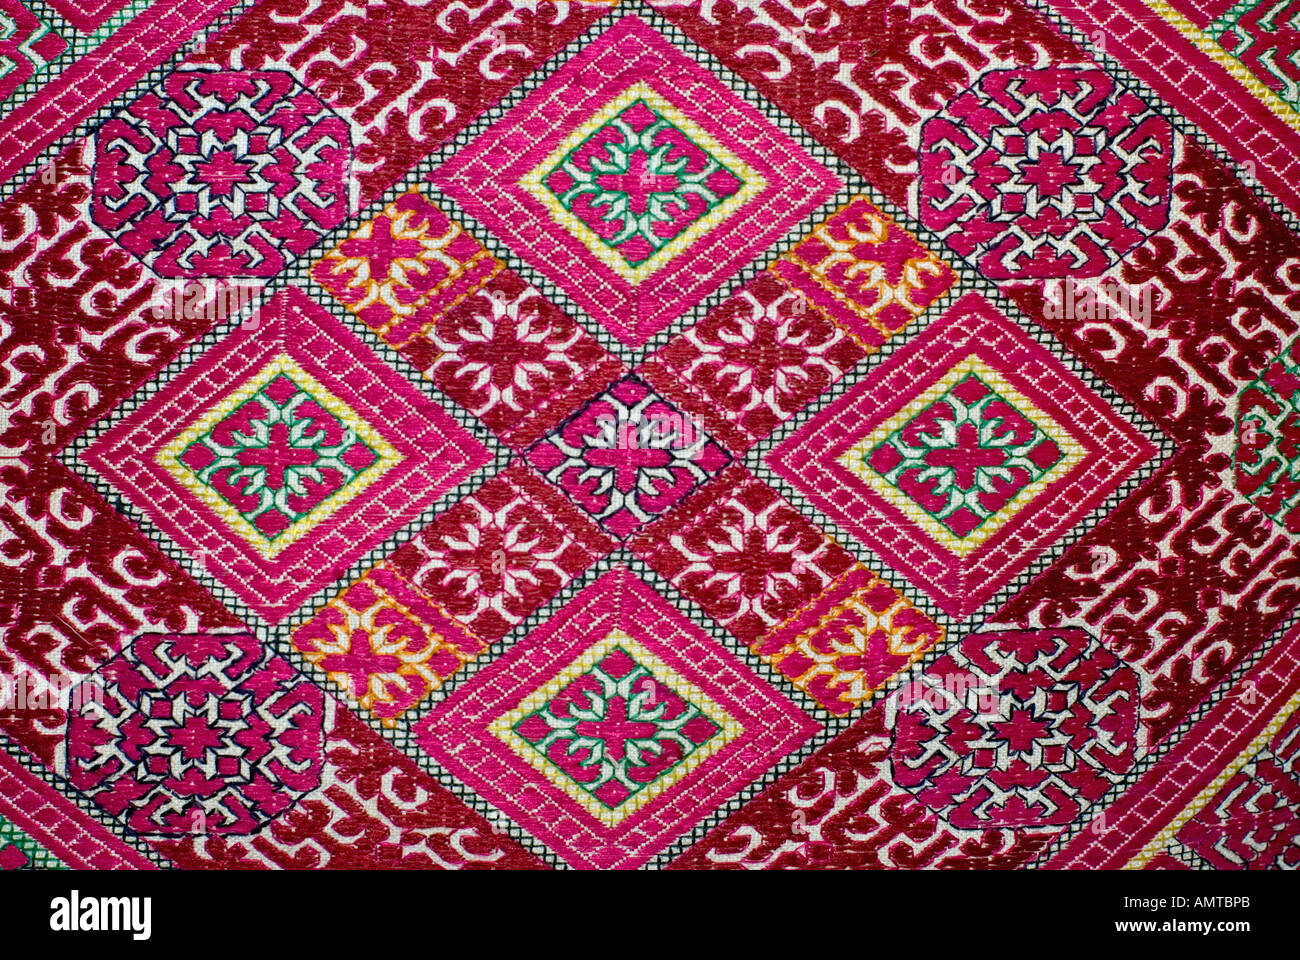 Ornately decorated Hazara matrimonial pillow covers Silk embroidery Katawaz Cushion Cover Acquired in Swat Valley Pakistan - Stock Image